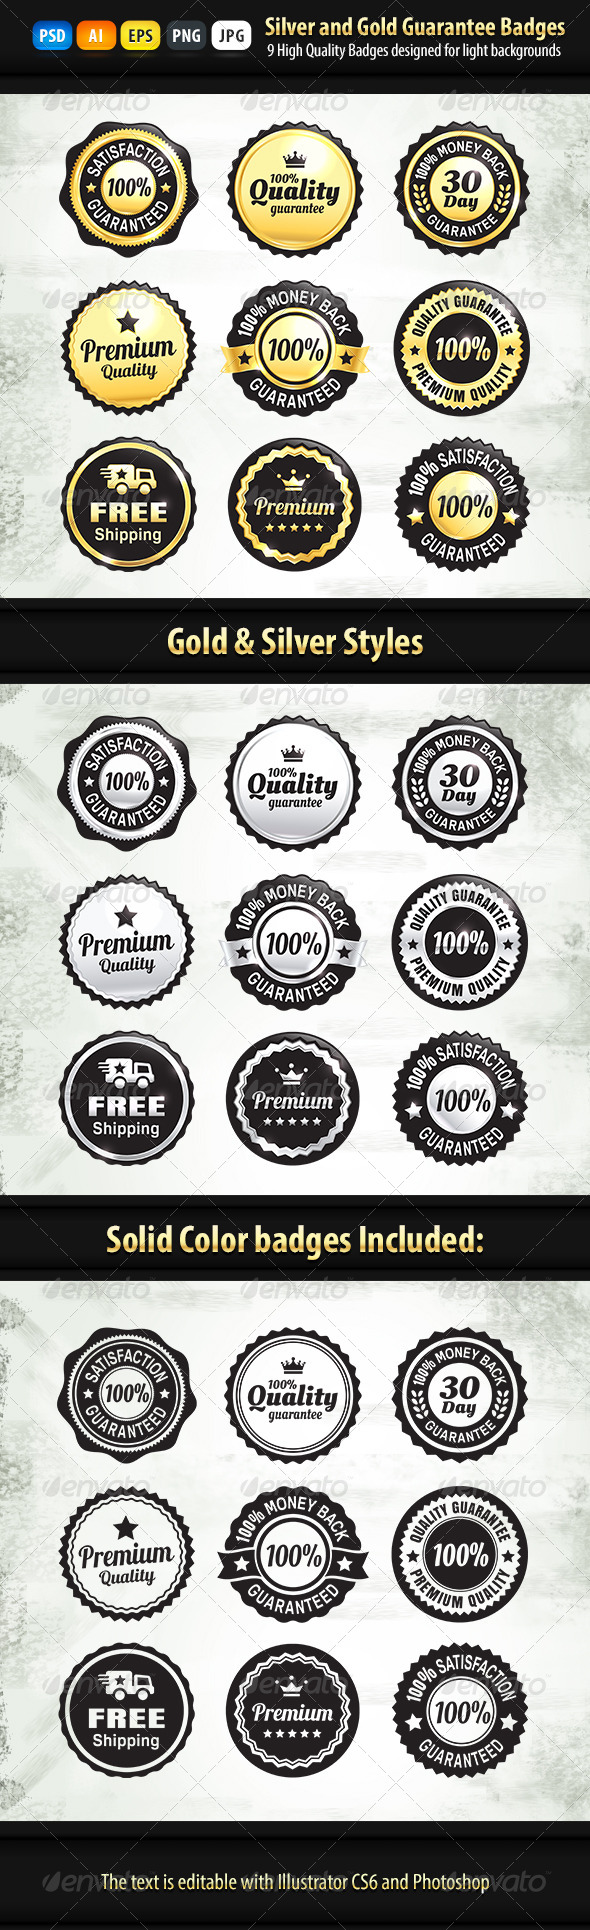 GraphicRiver 9 Gold And Silver Quality Guarantee Badges 7038290